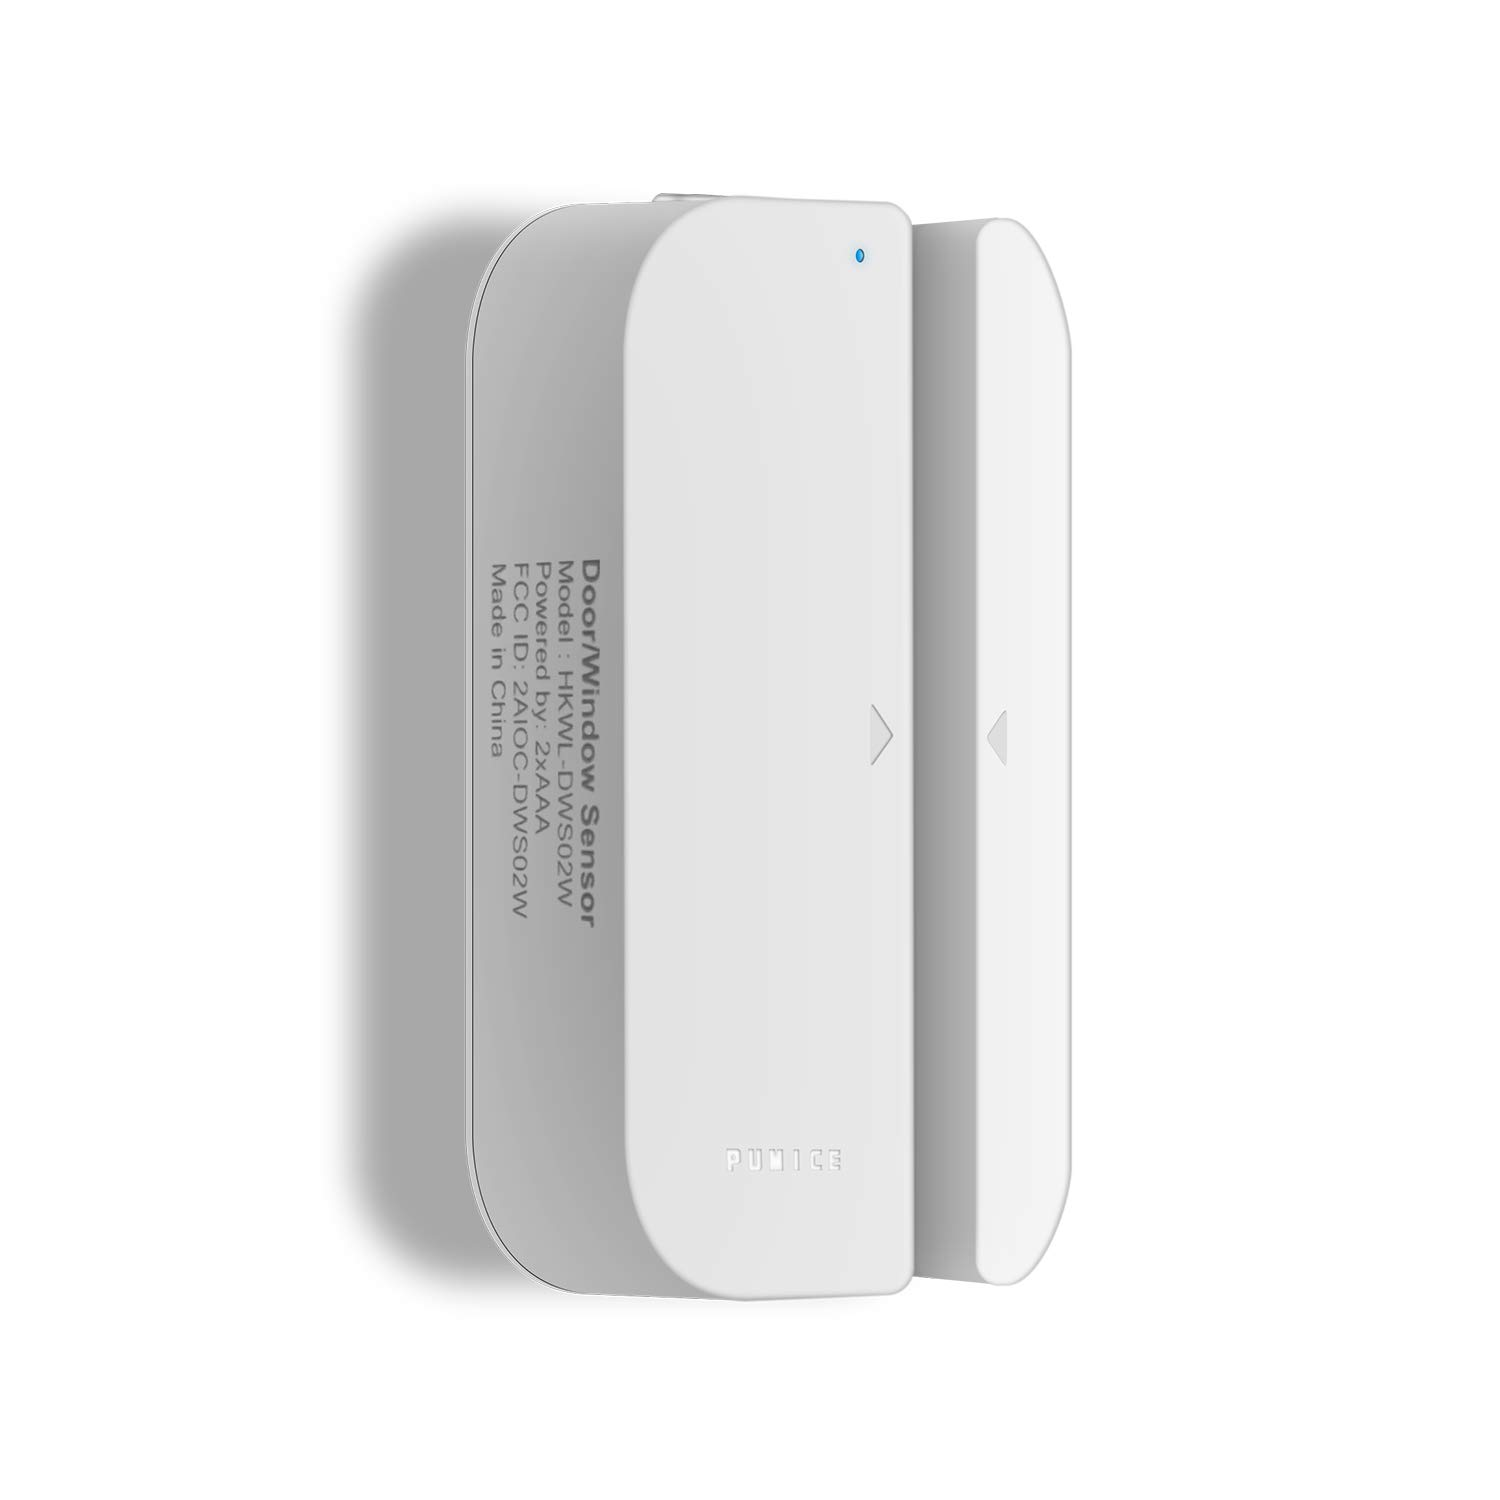 Wifi Door Window Sensor2018 New Wireless Smart Security Alarm Contact Wiring Series Doorbell Magnet Sensor With Easy App For Home Office Business Burglar